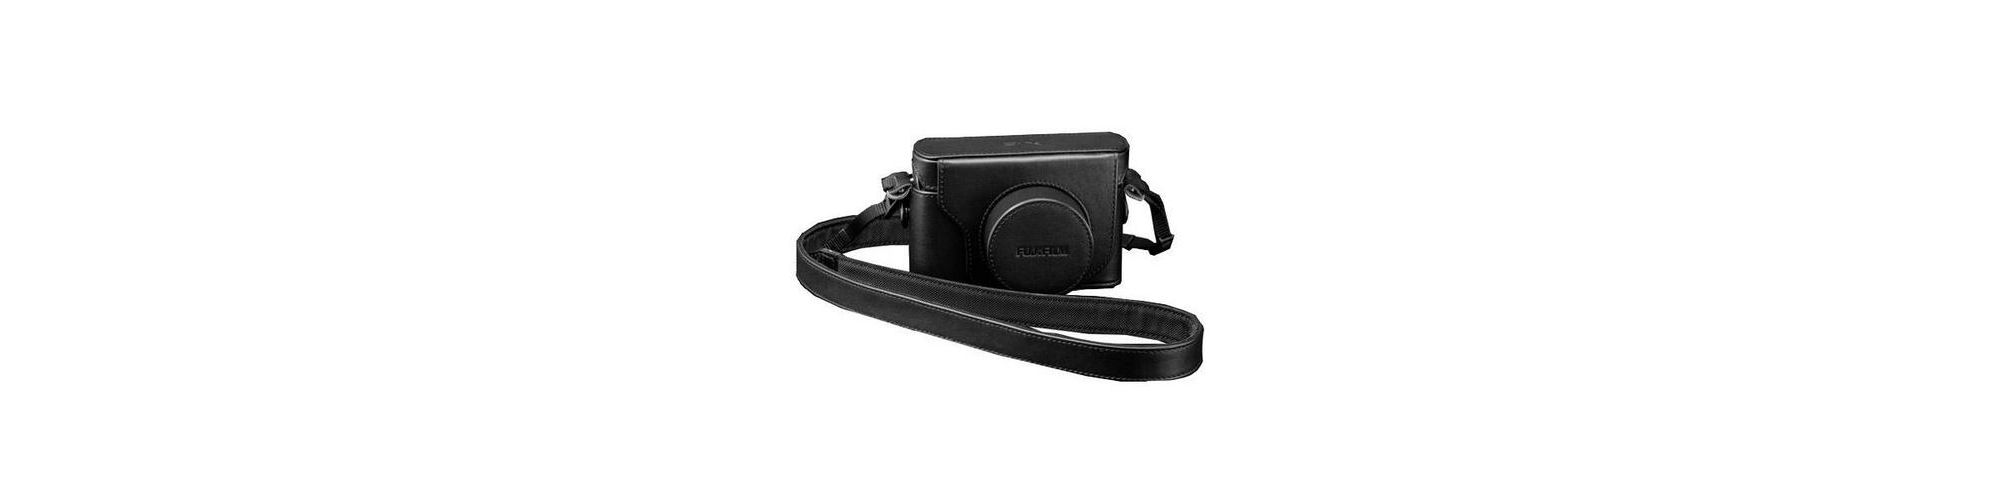 Fuji Premium Leather Case for X10